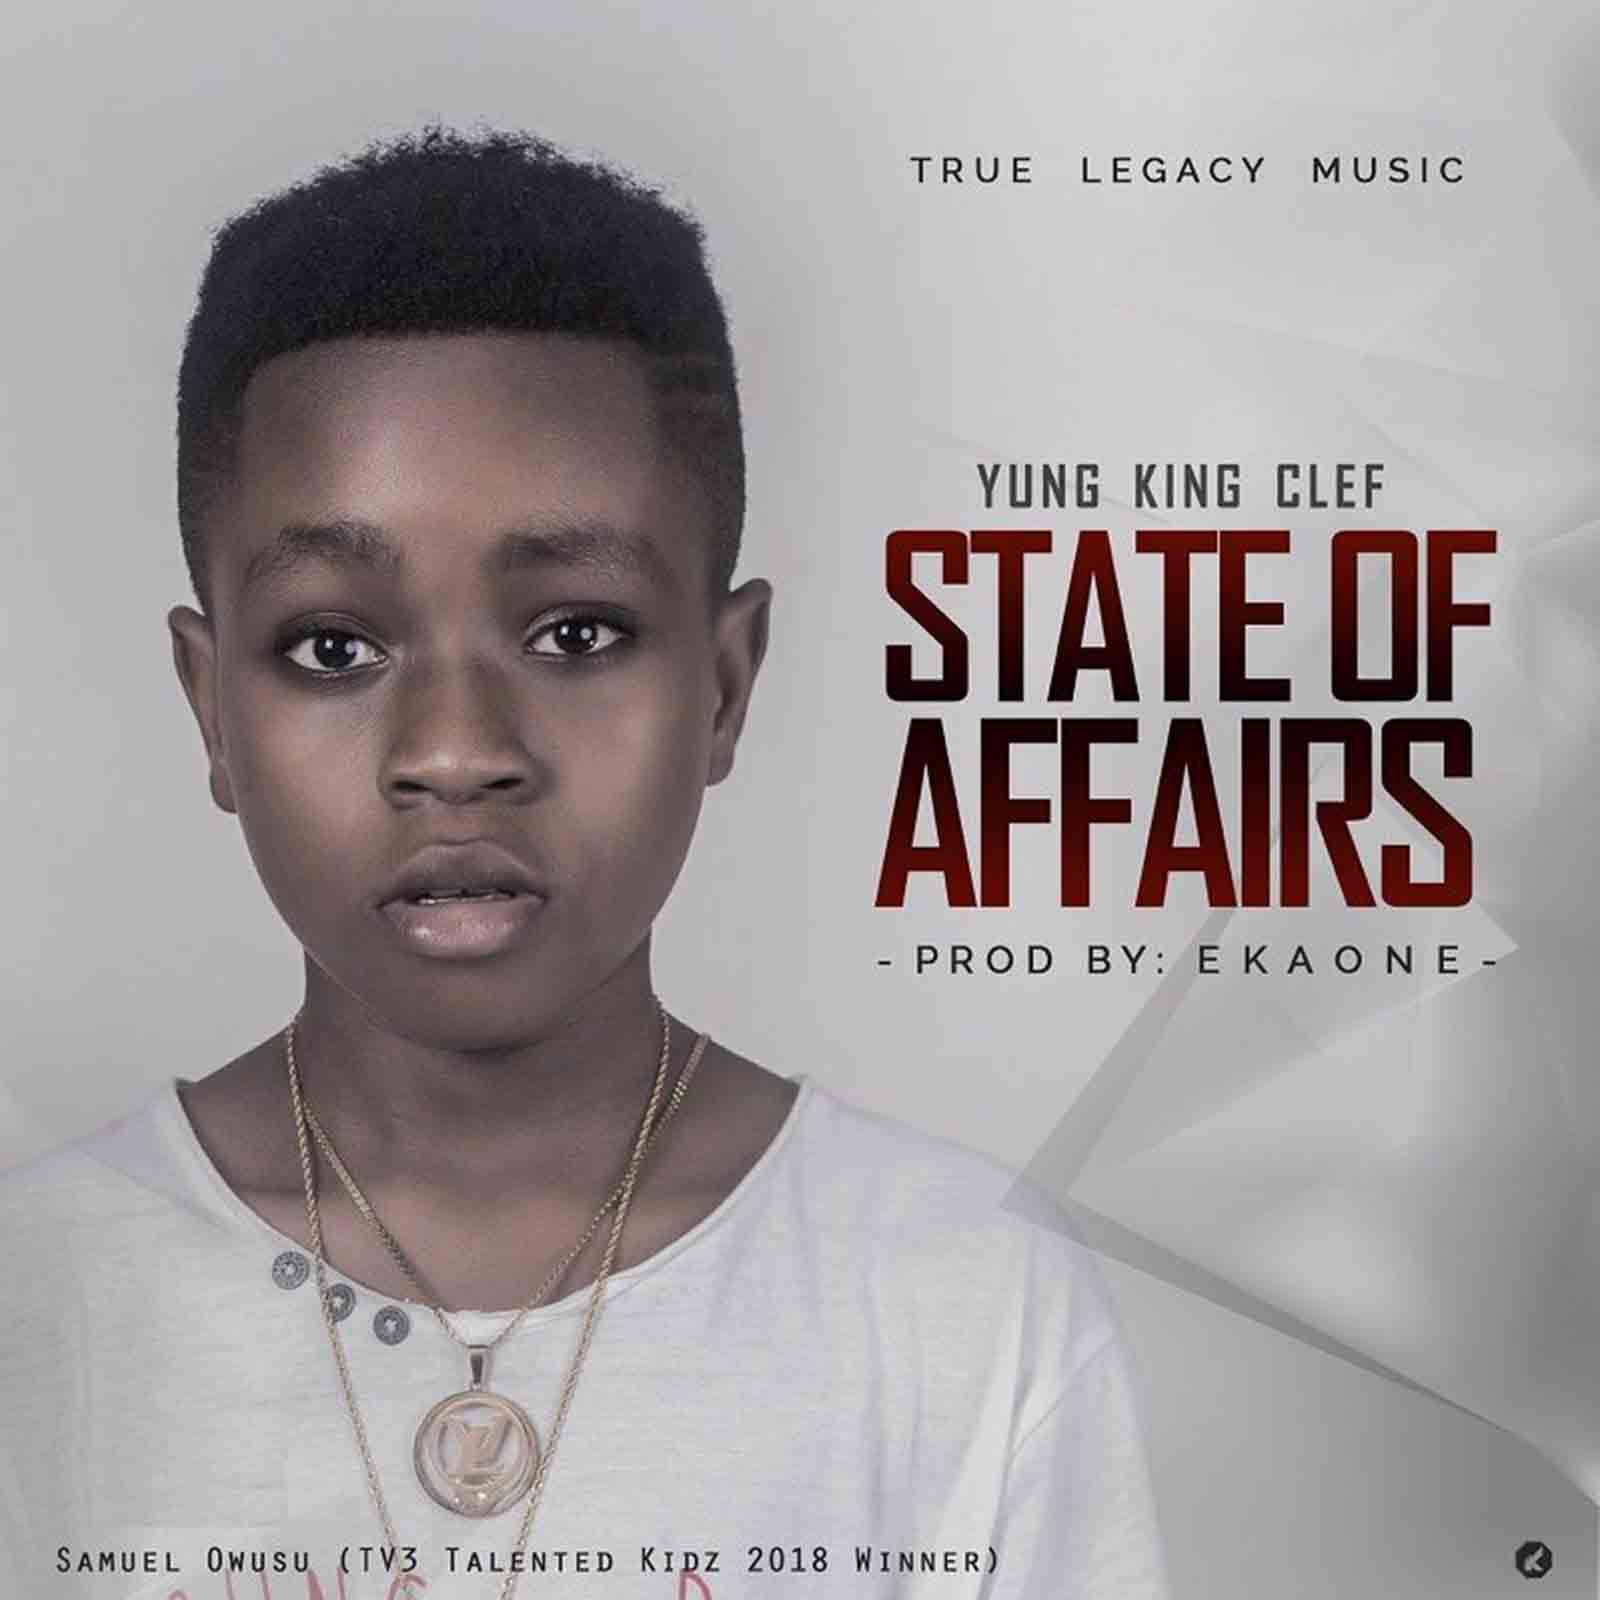 State of Affairs by Samuel Owusu